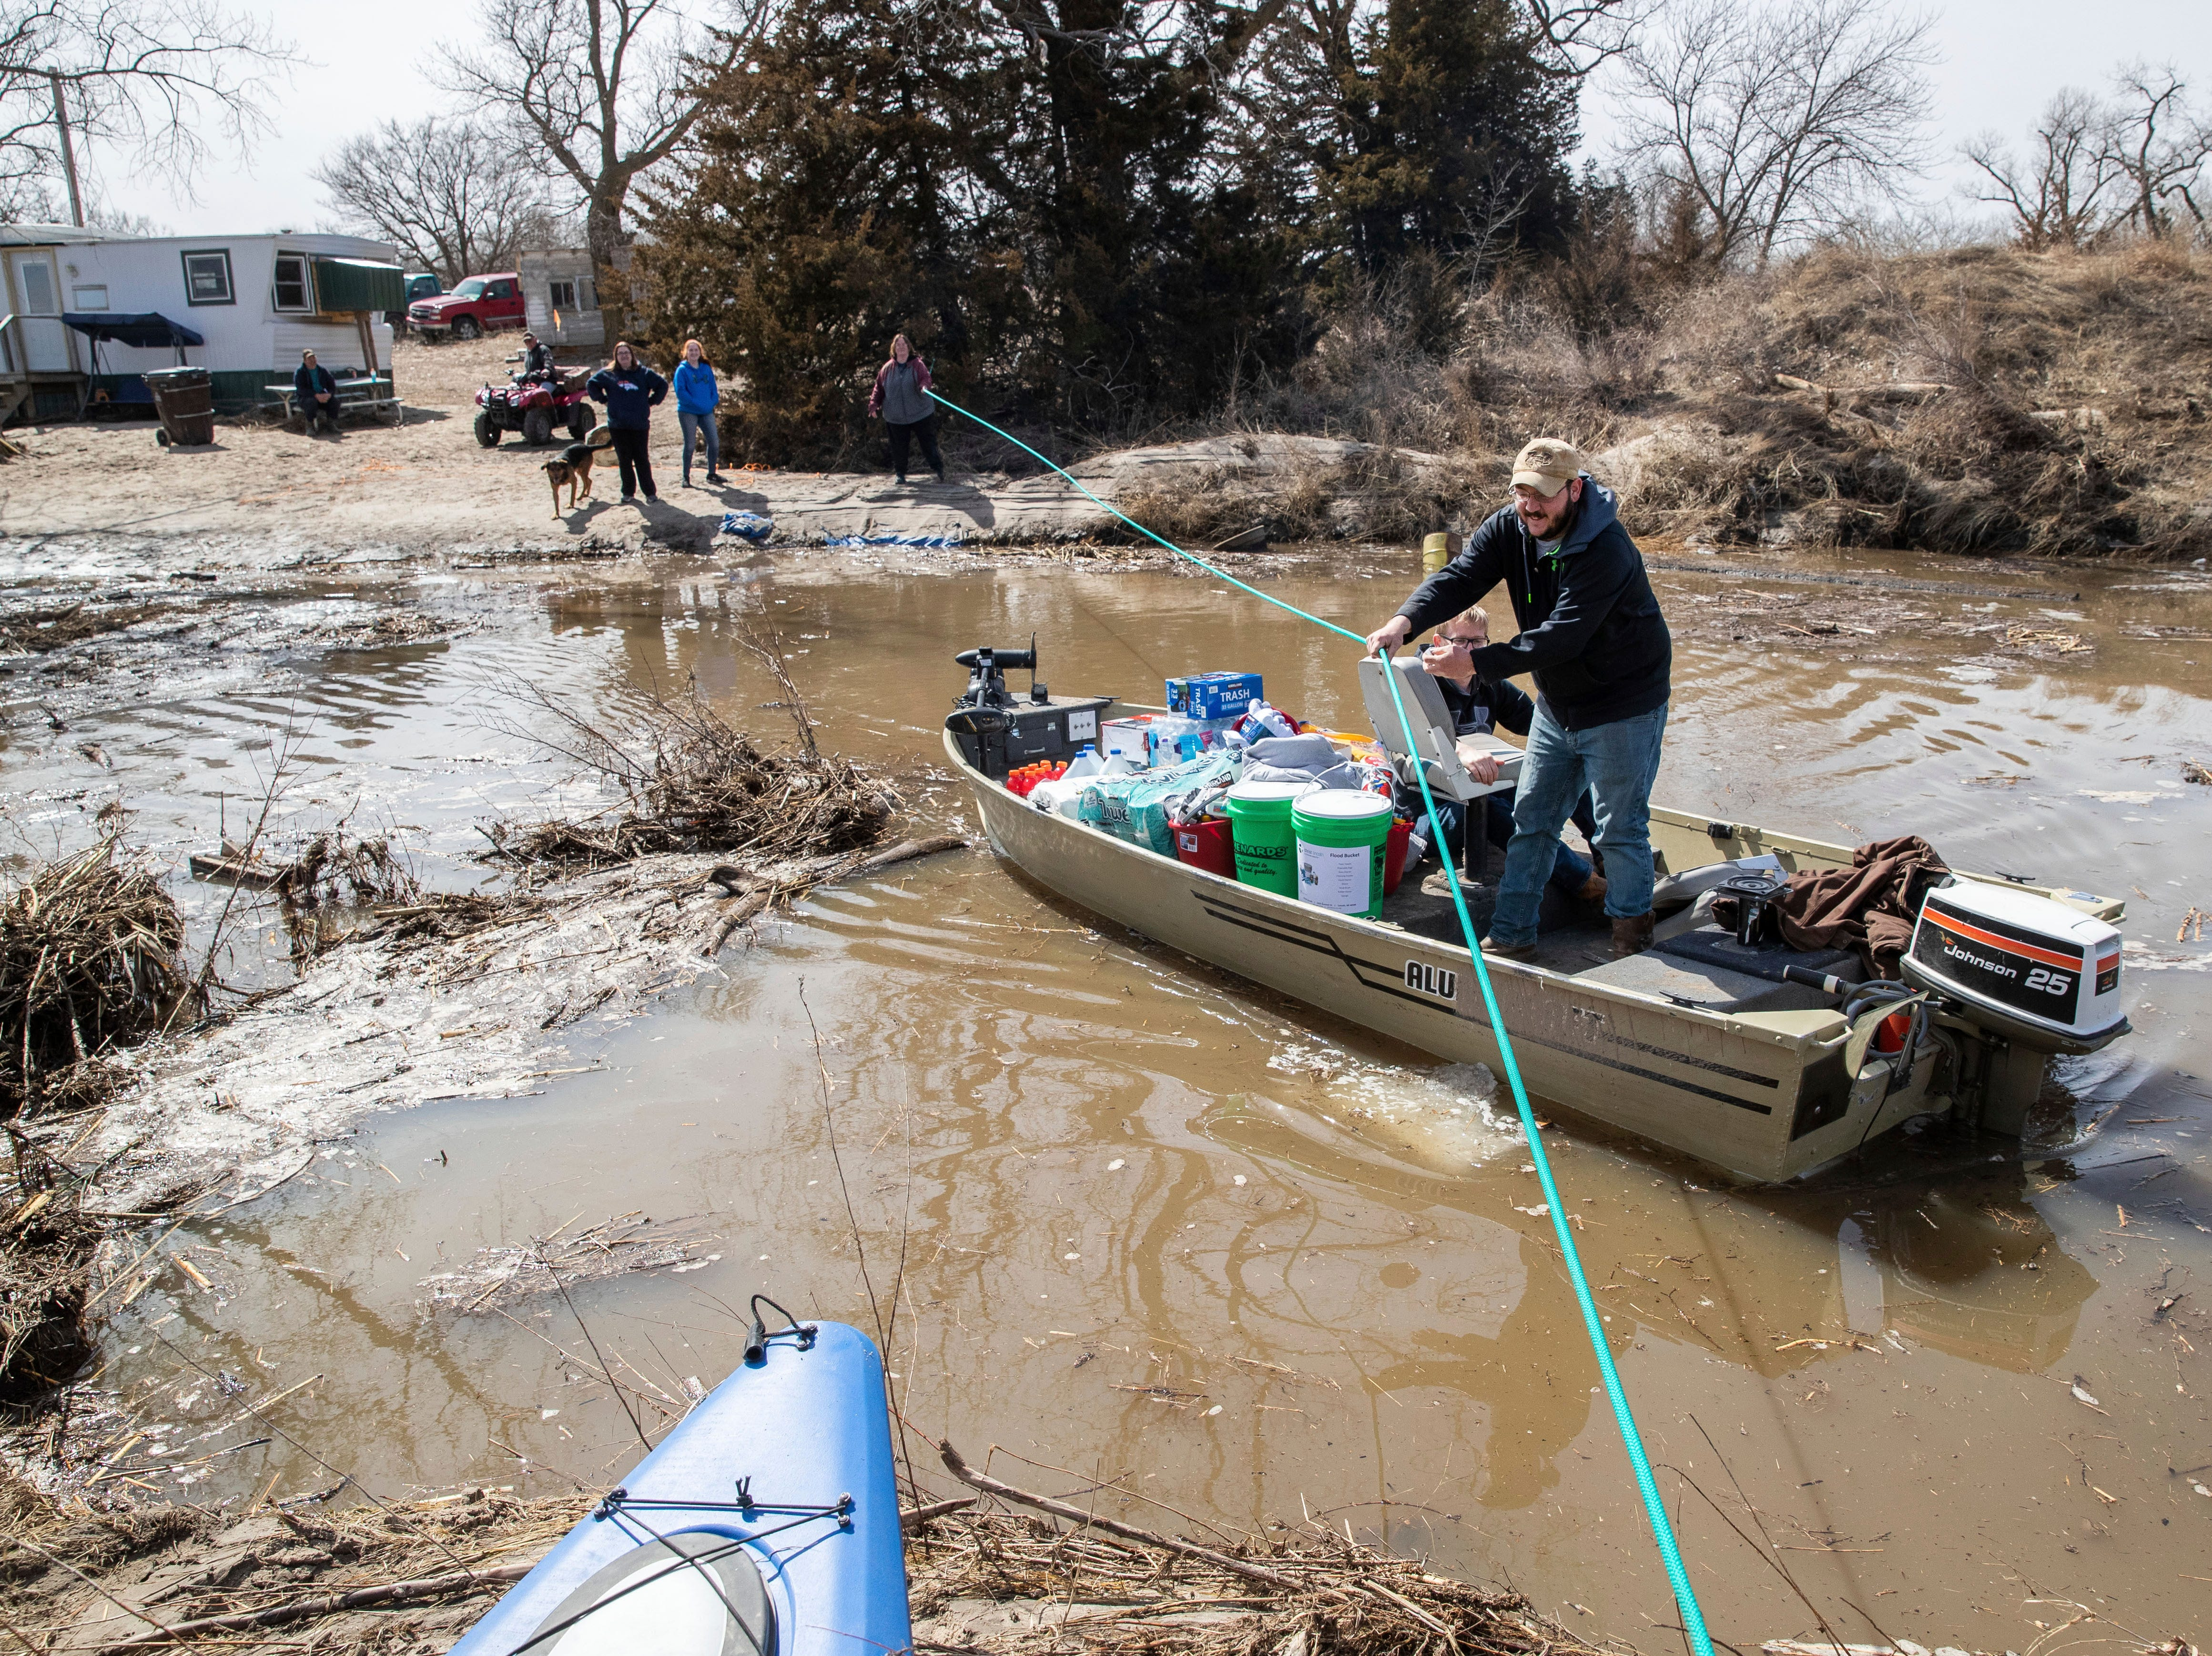 Andrew Bauer and Shawn Shonerd bring in supplies to the Bellwood, Neb. area, March 18, 2019. Much of the area was heavily impacted by flooding along the Platte River.